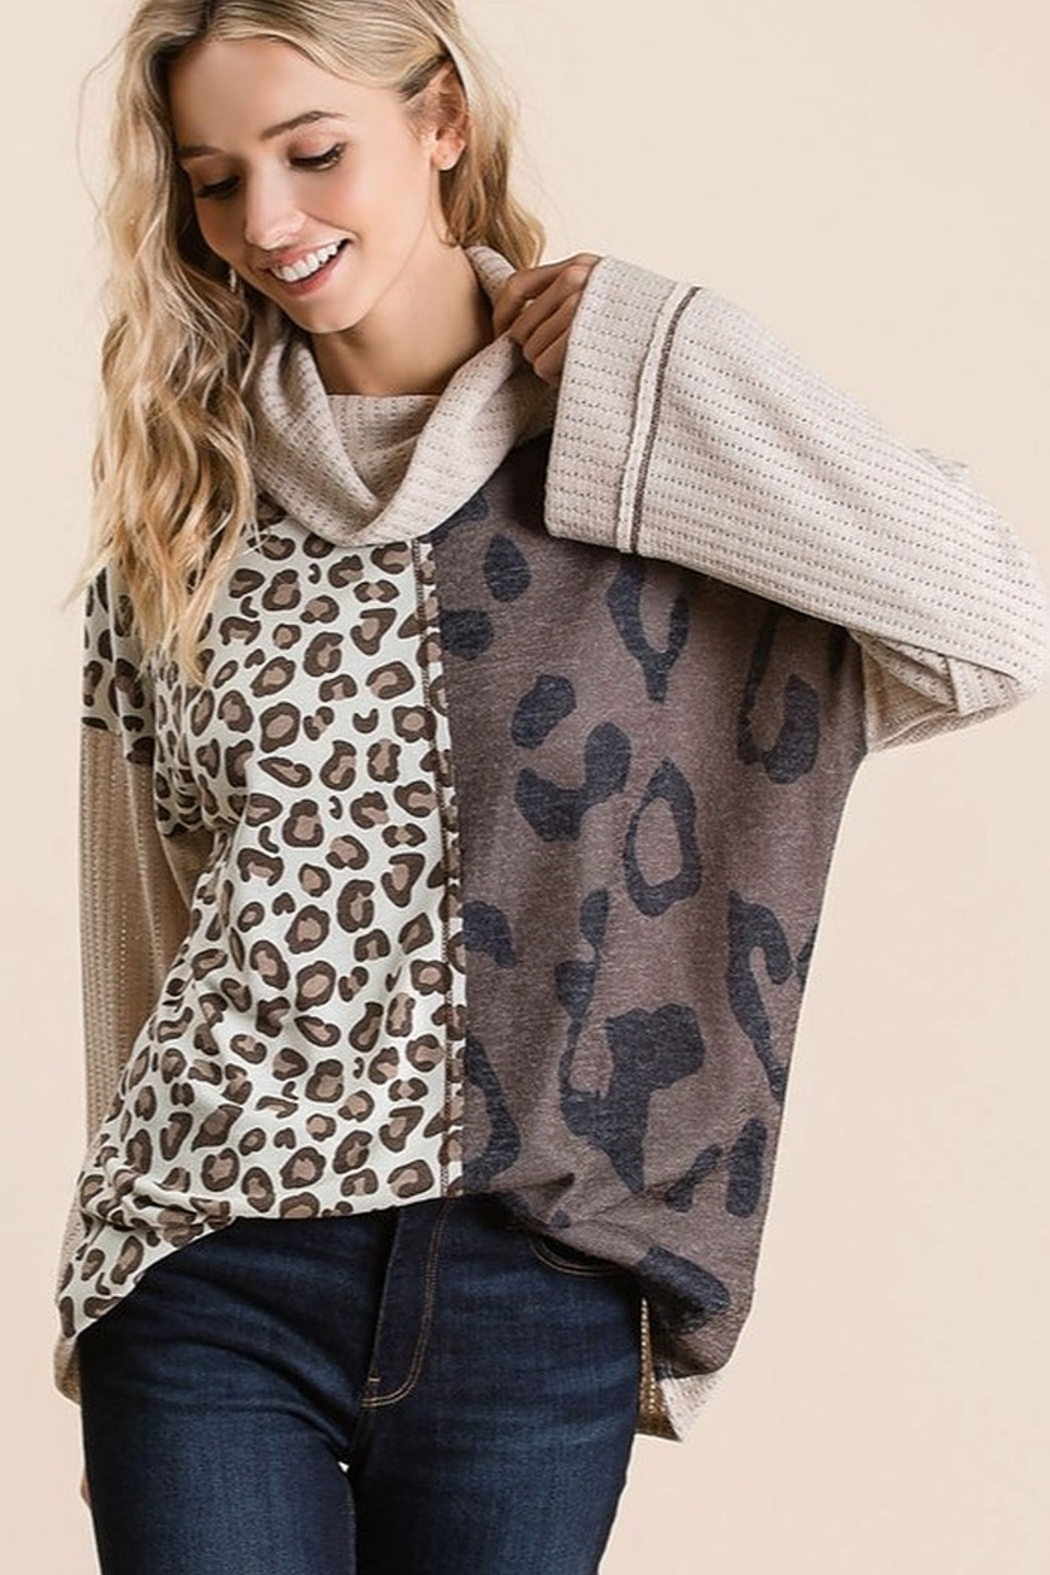 Bibi POINTELLE COWL NECK TOP WITH PRINT BLOCK - Front Full Image